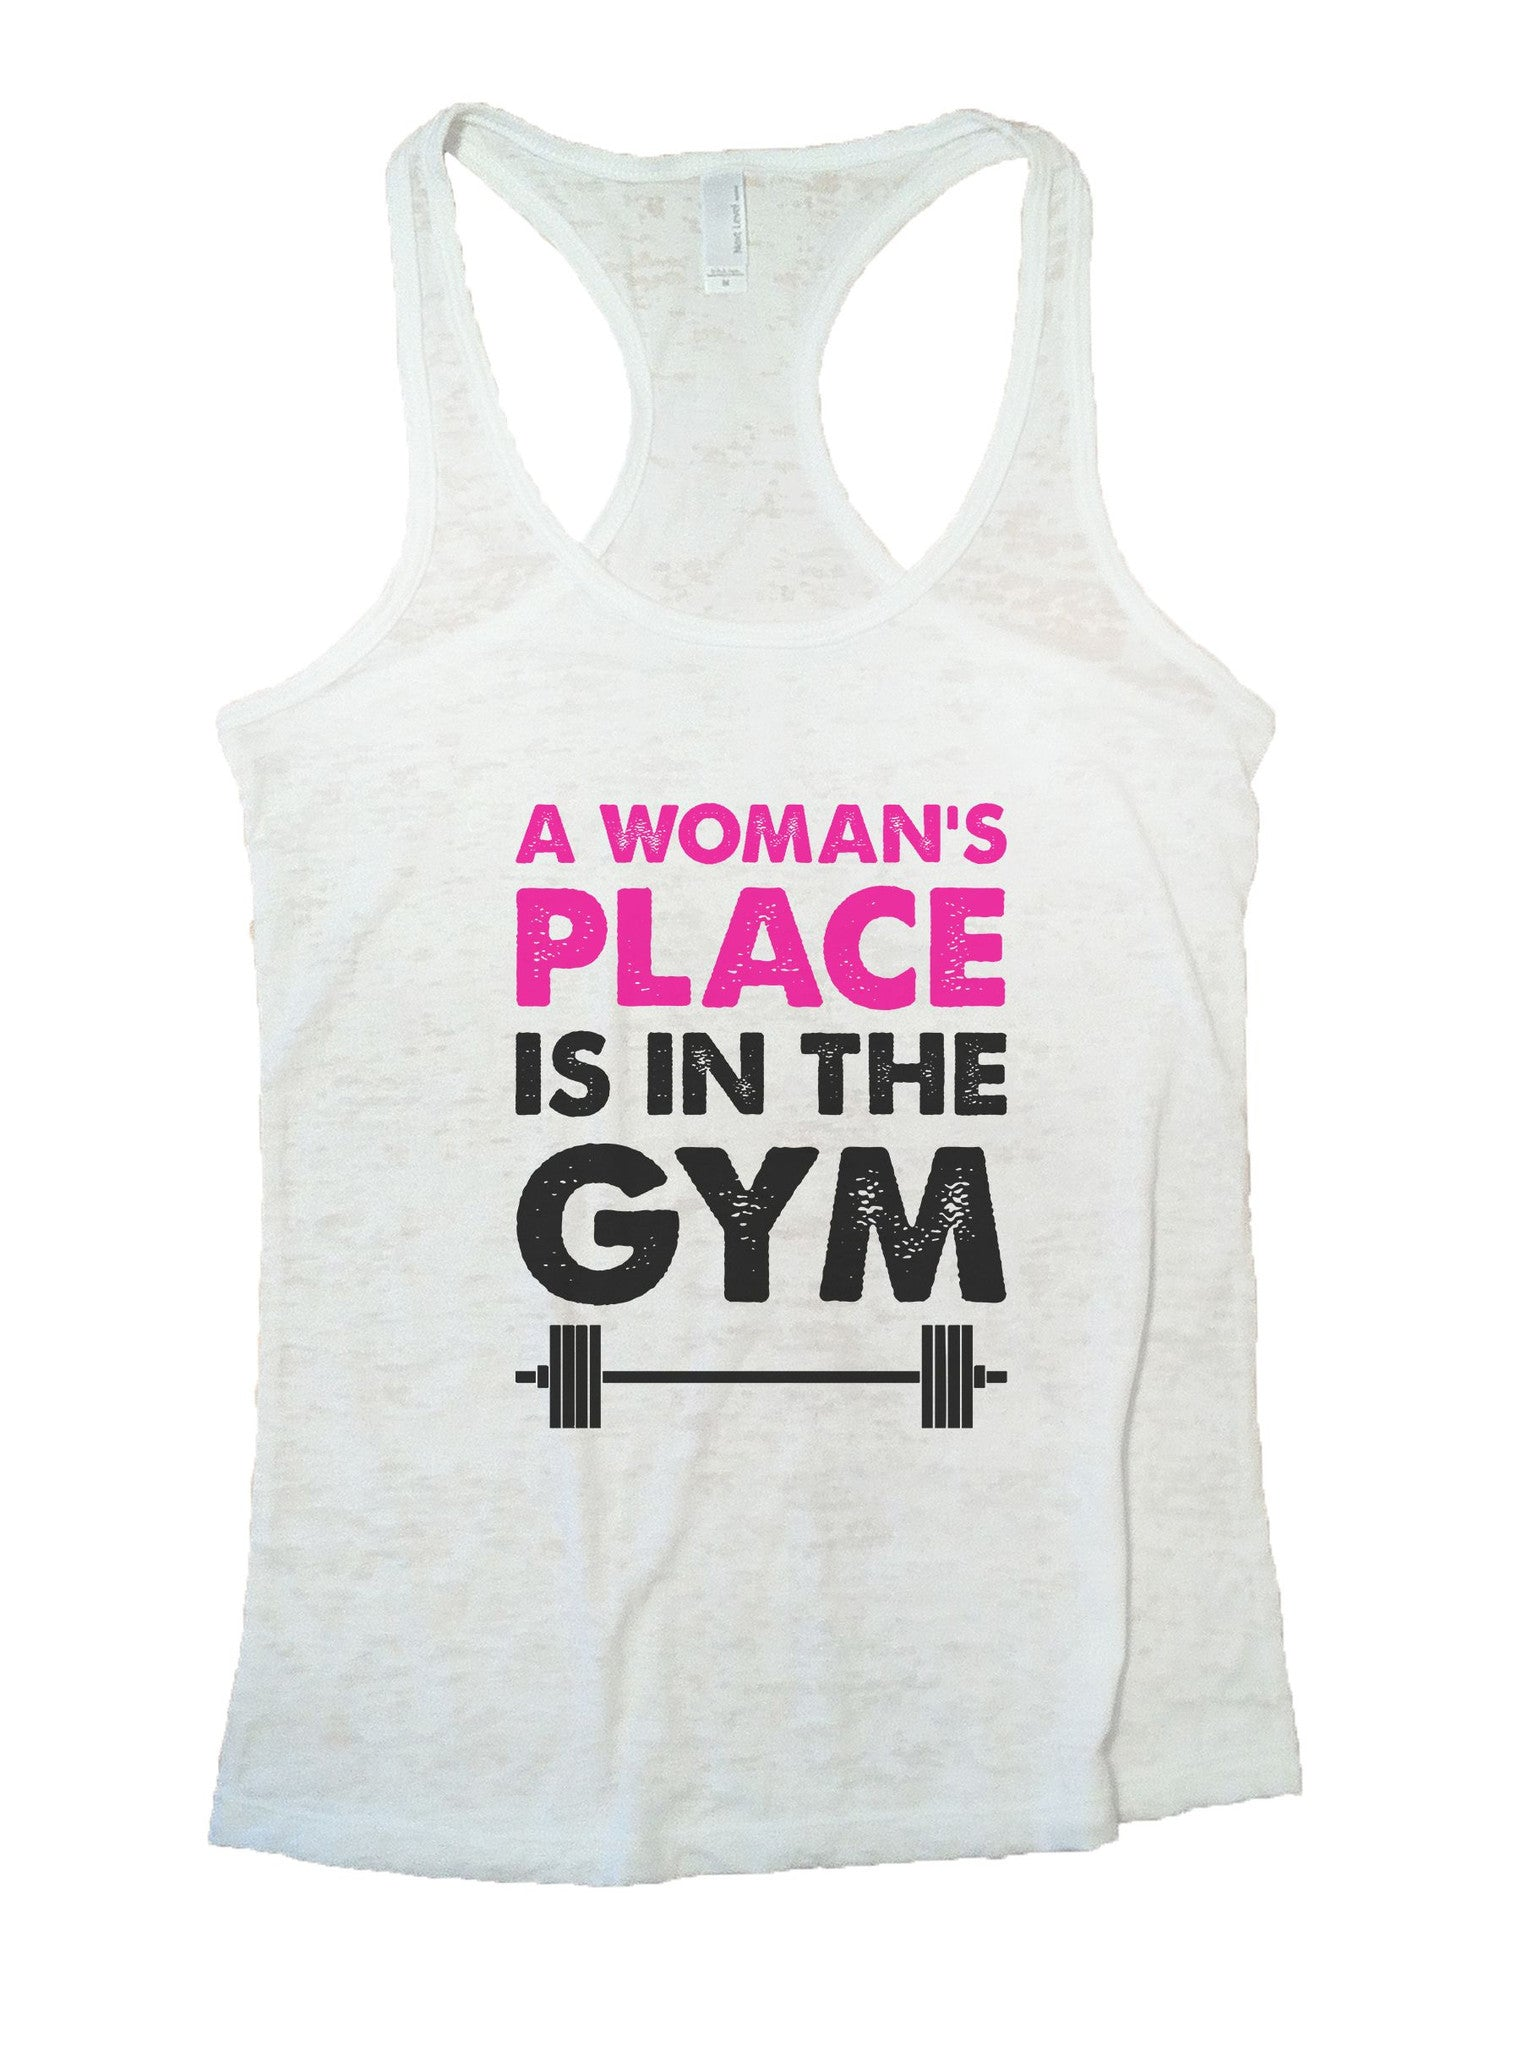 A Woman's Place Is In The Gym Burnout Tank Top By BurnoutTankTops.com - 854 - Funny Shirts Tank Tops Burnouts and Triblends  - 5